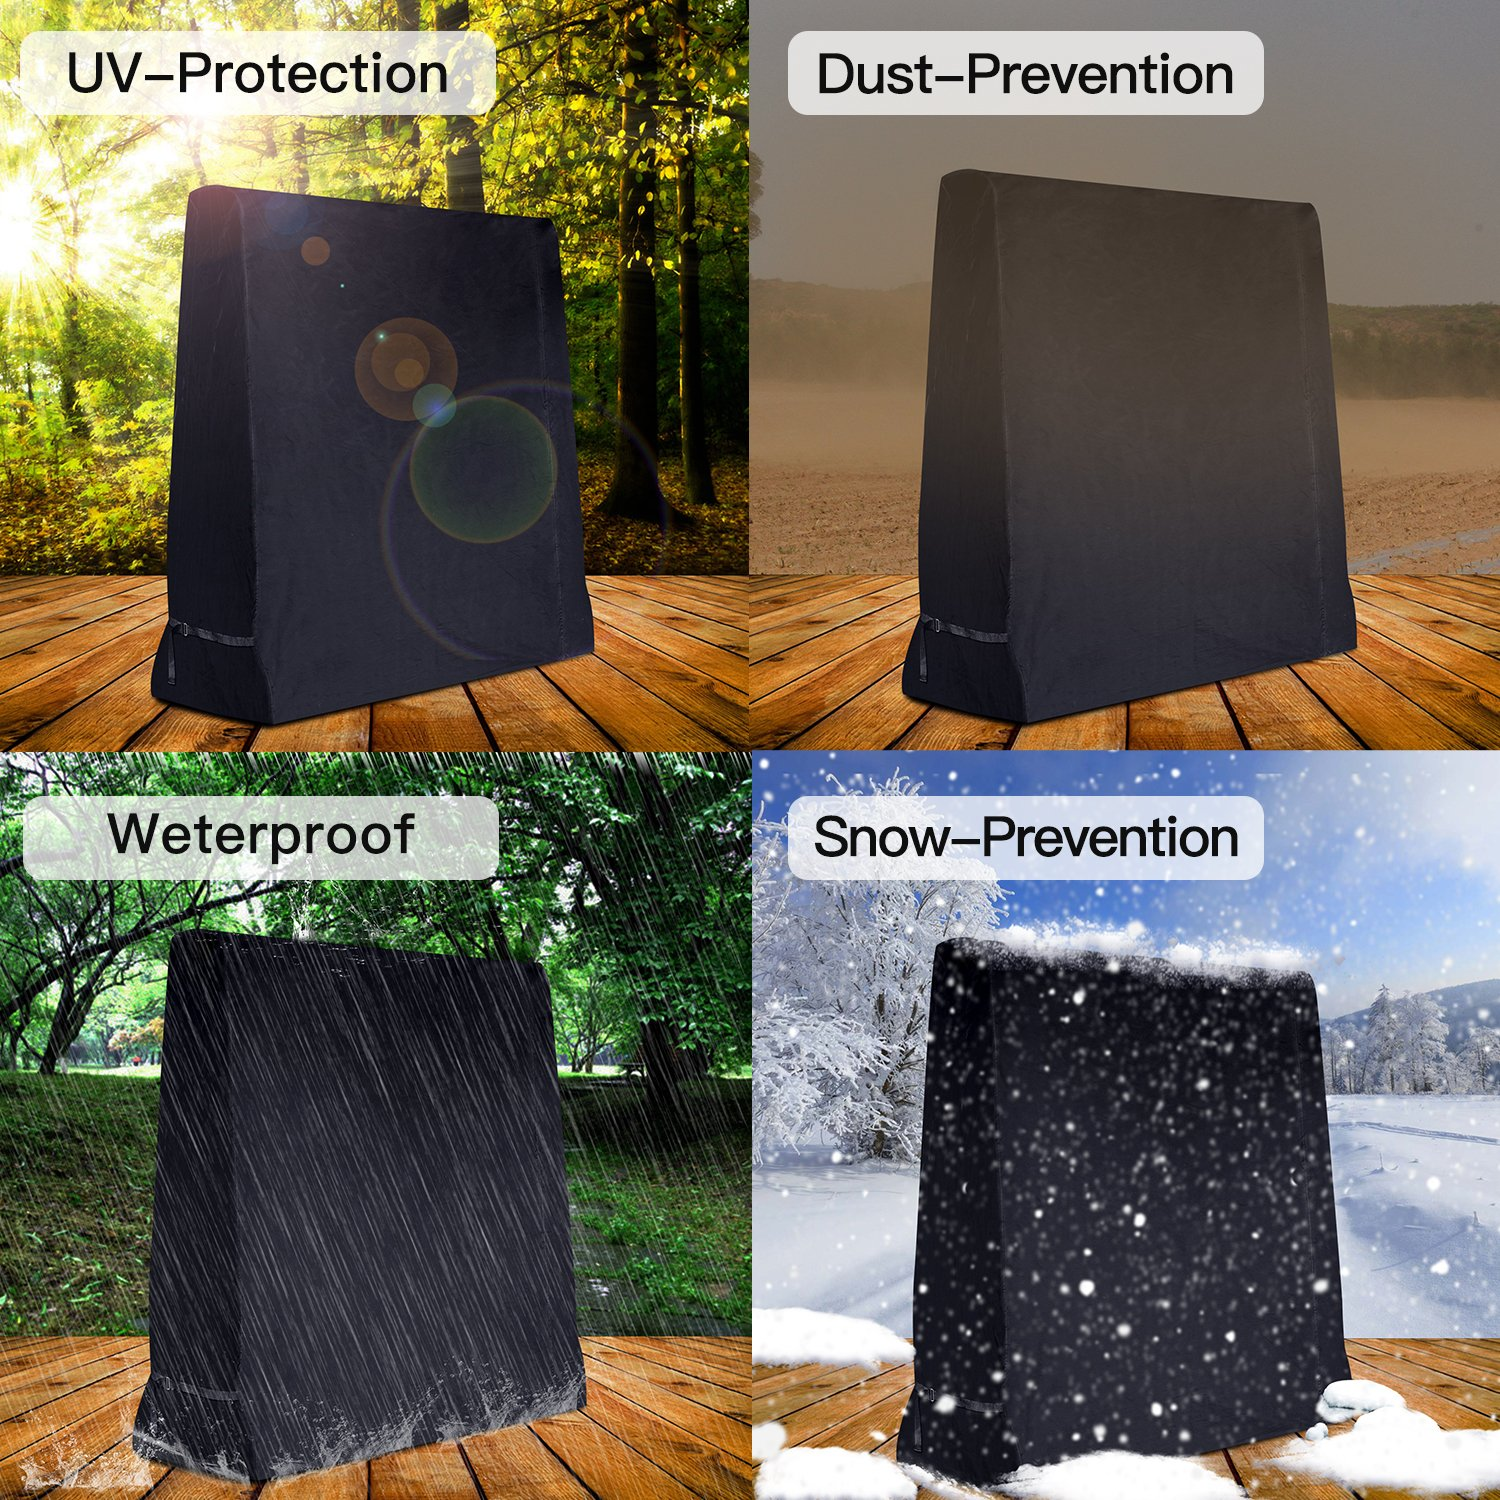 Dellcciu cover for table tennis table Waterproof UV resistant cover for table tennis tables 165 cm x 70 cm x 185 cm made from synthetic fabric high-quality weatherproof protective cover